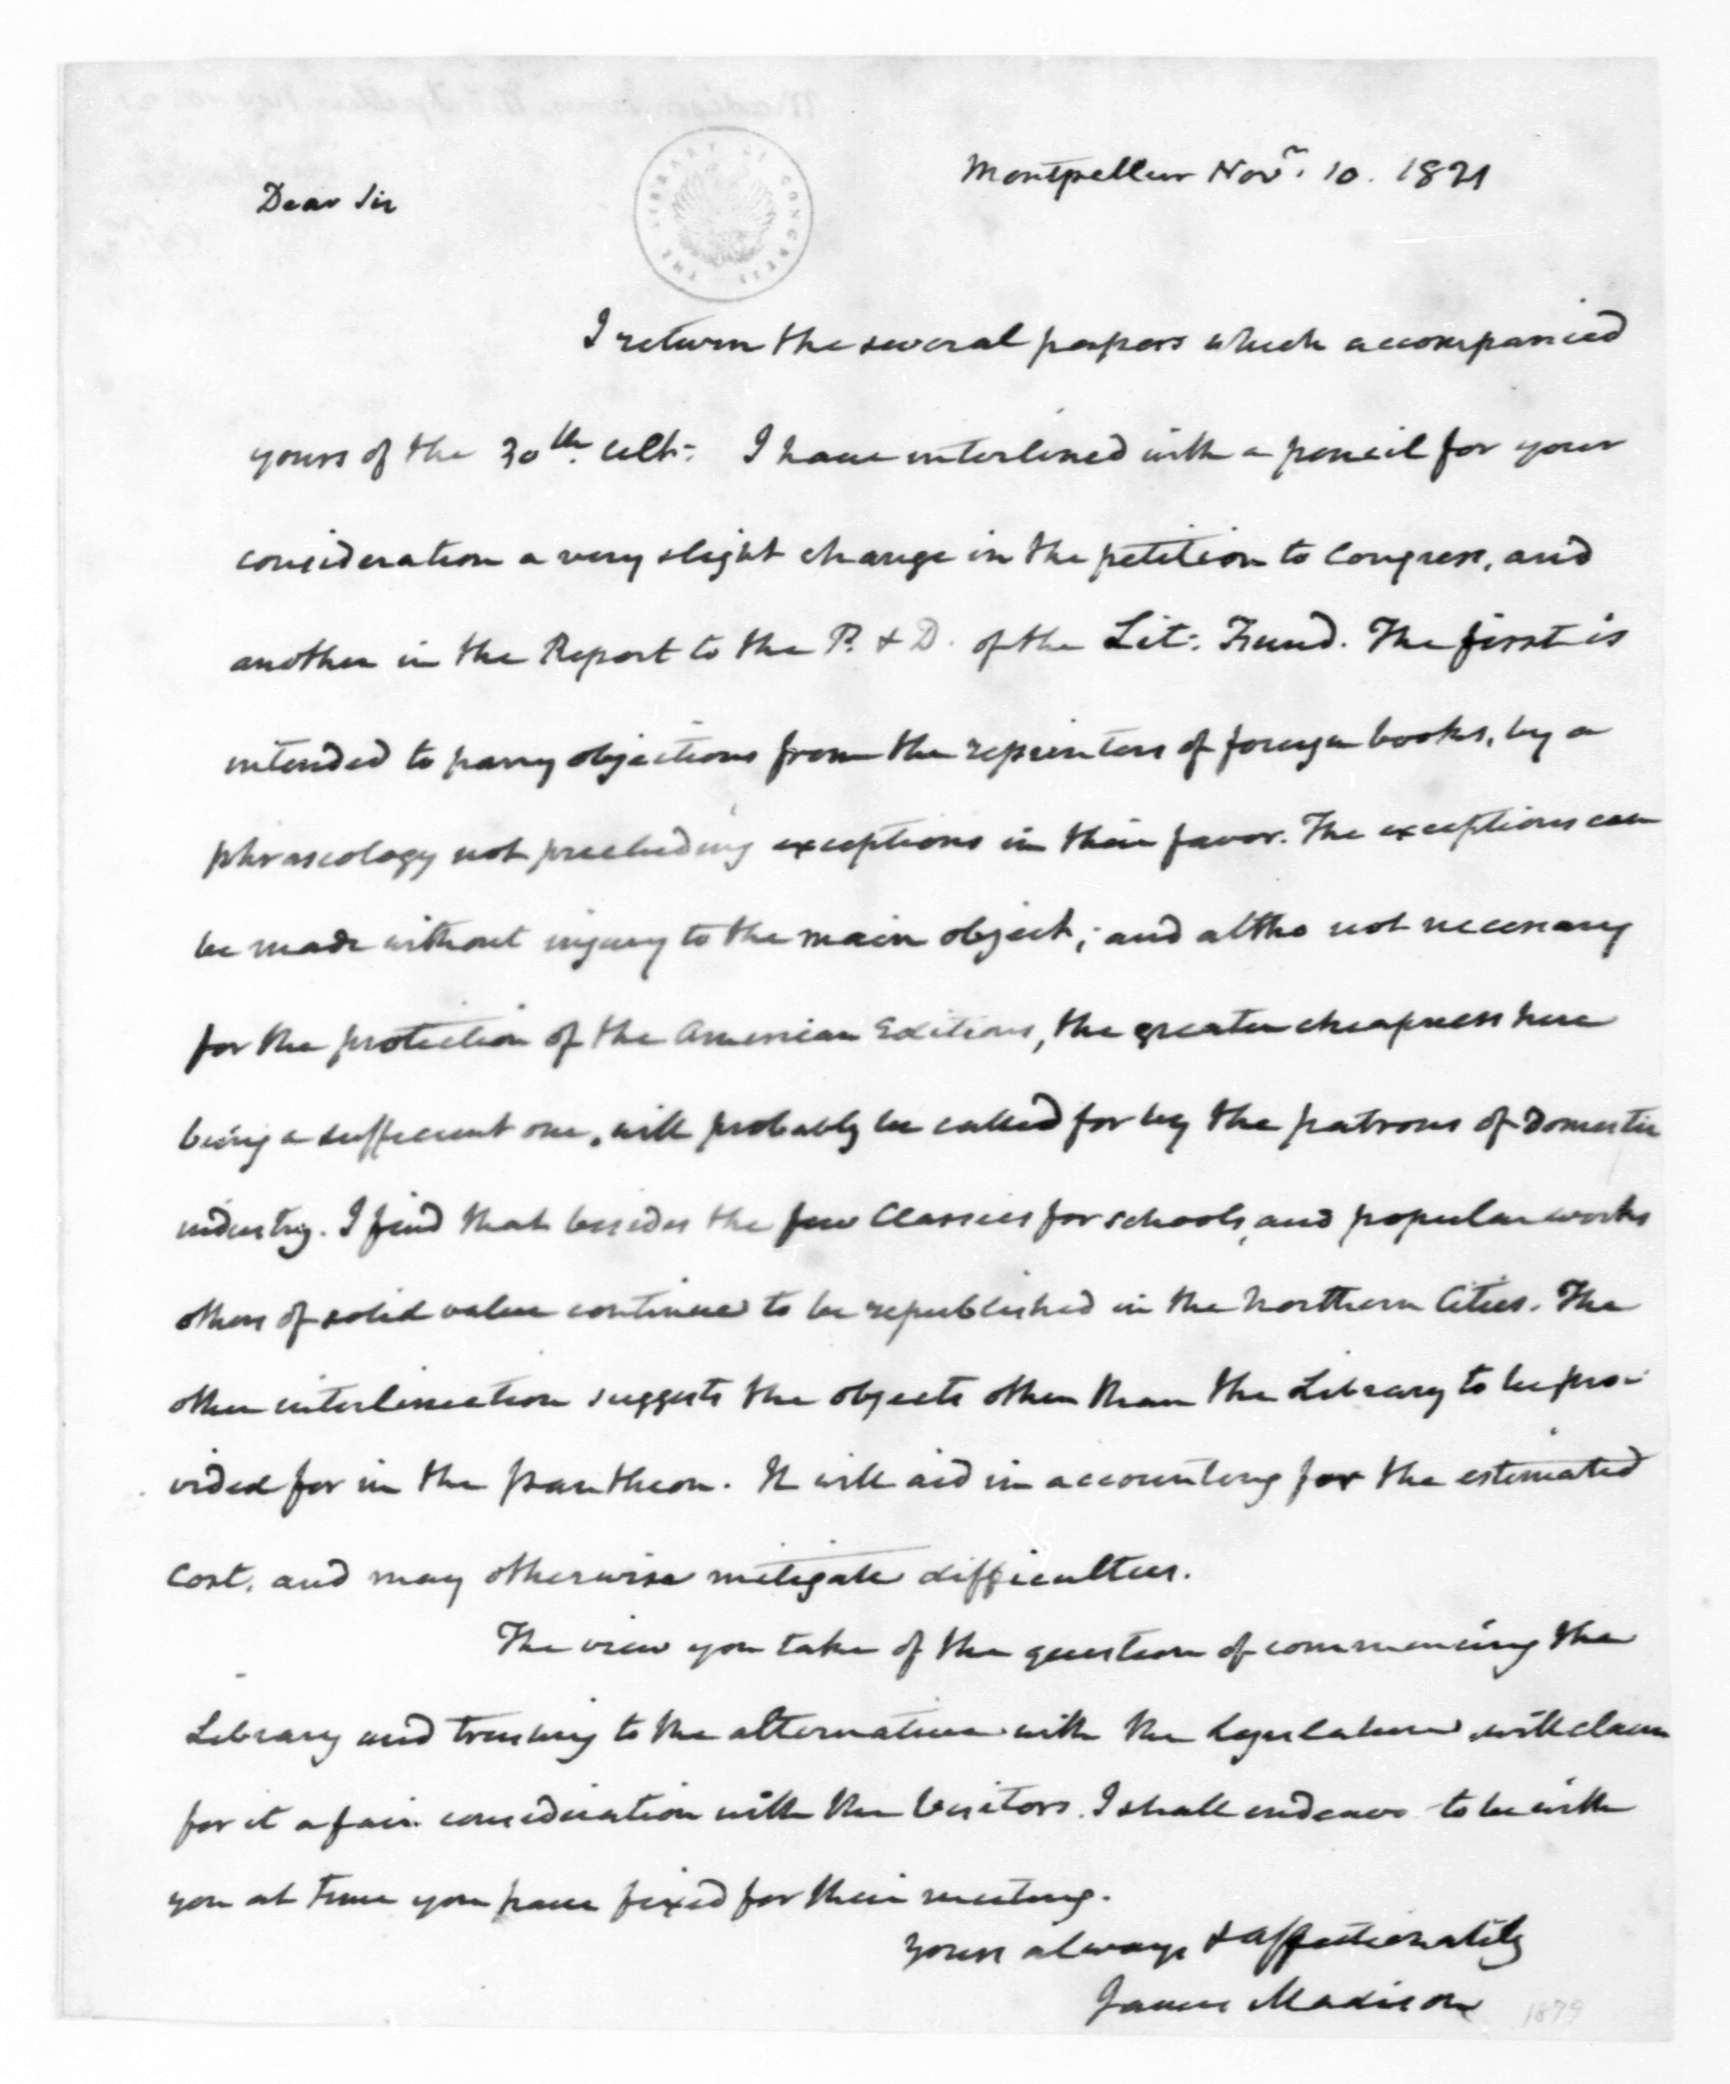 File:James Madison to Thomas Jefferson, 10 November 1821